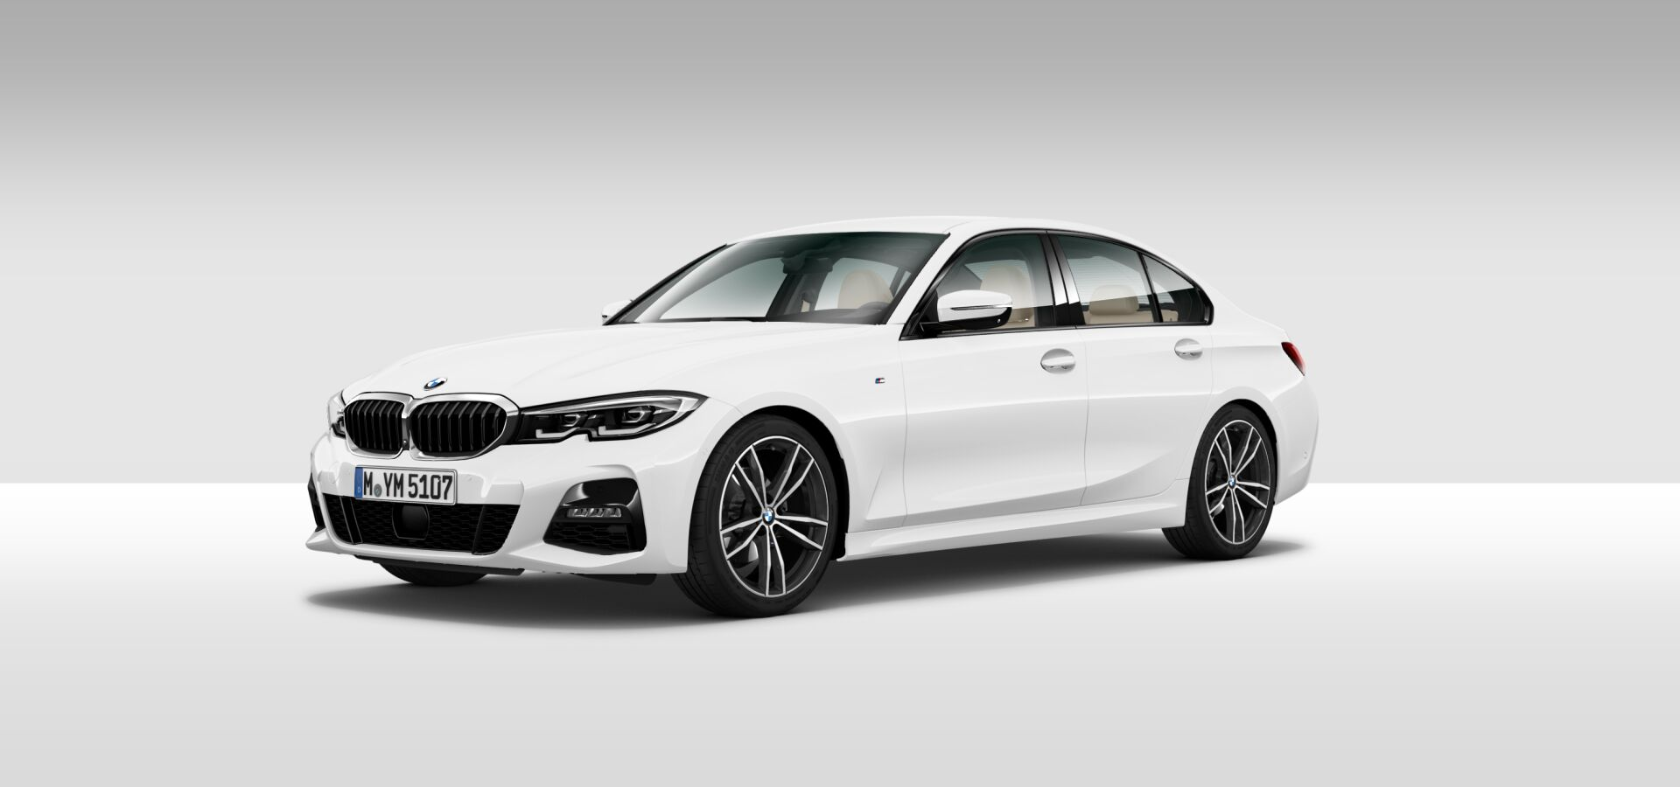 We repair BMW smashes in the inner west